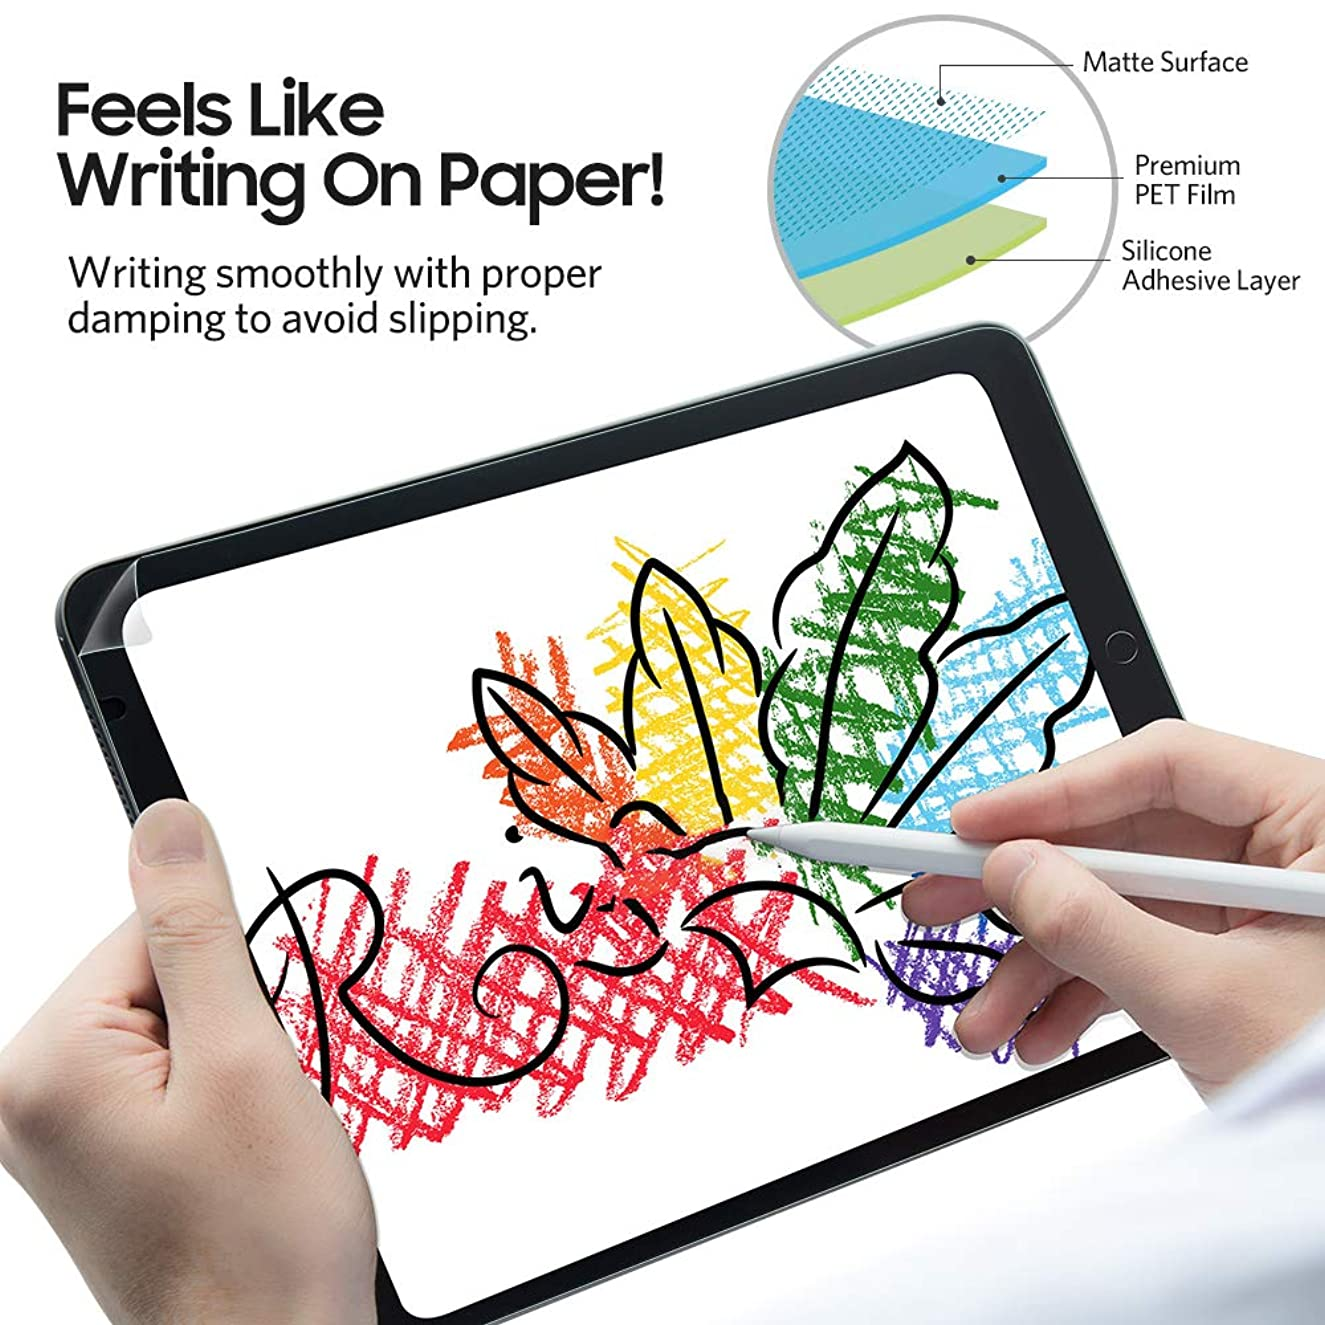 "Benks Paper-Like Screen Protector for iPad 9.7 Paper-Feel PET Film Write, Draw and Sketch [Anti Glare/Scratch/Fingerprint] for iPad Air/ Air2/ Pro 9.7"" [Apple Pencil 1st Generation Compatible]"